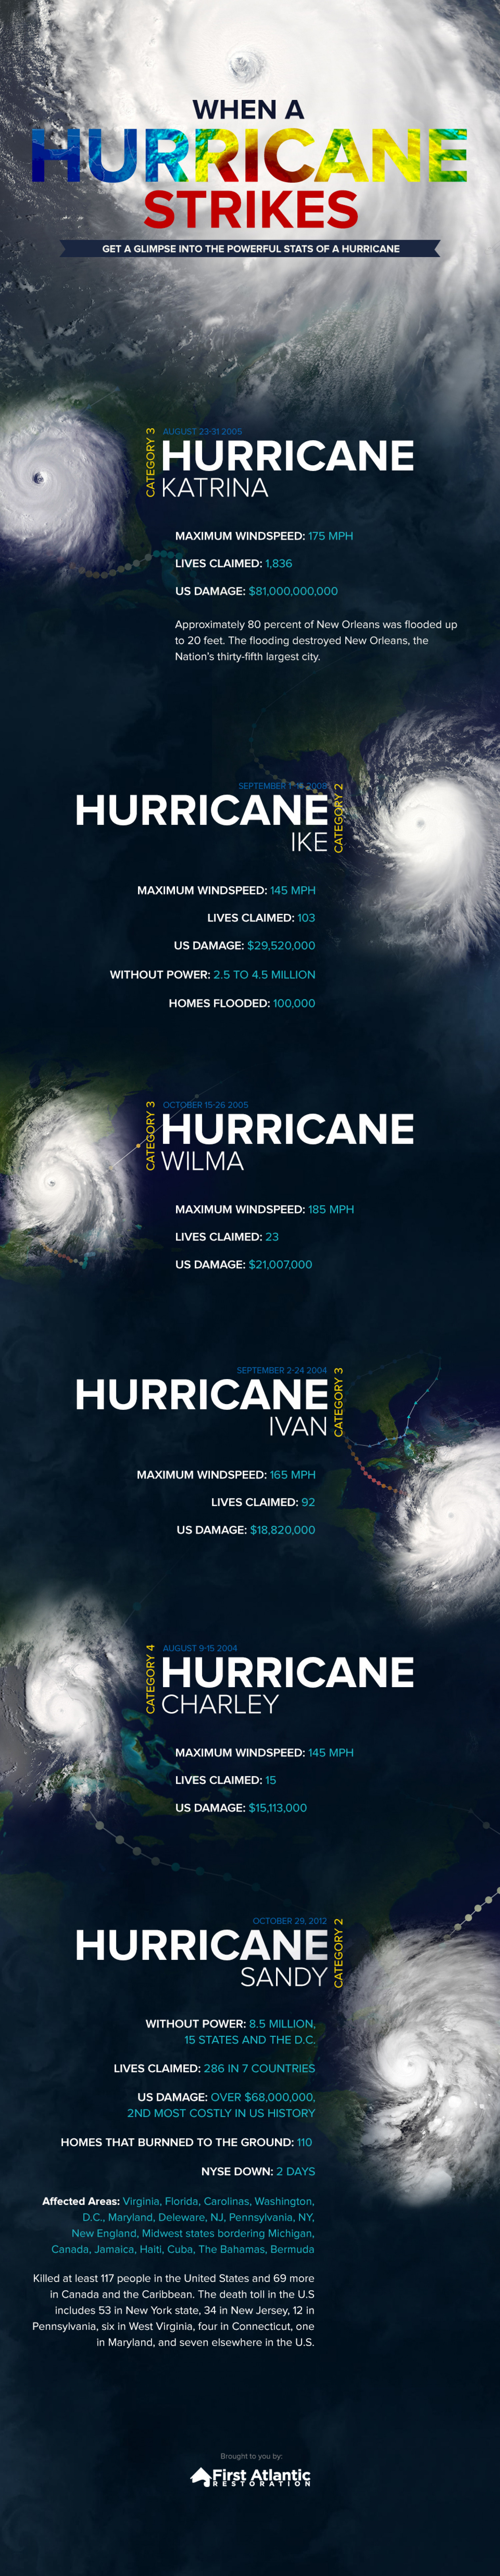 When a Hurricane Strikes Infographic